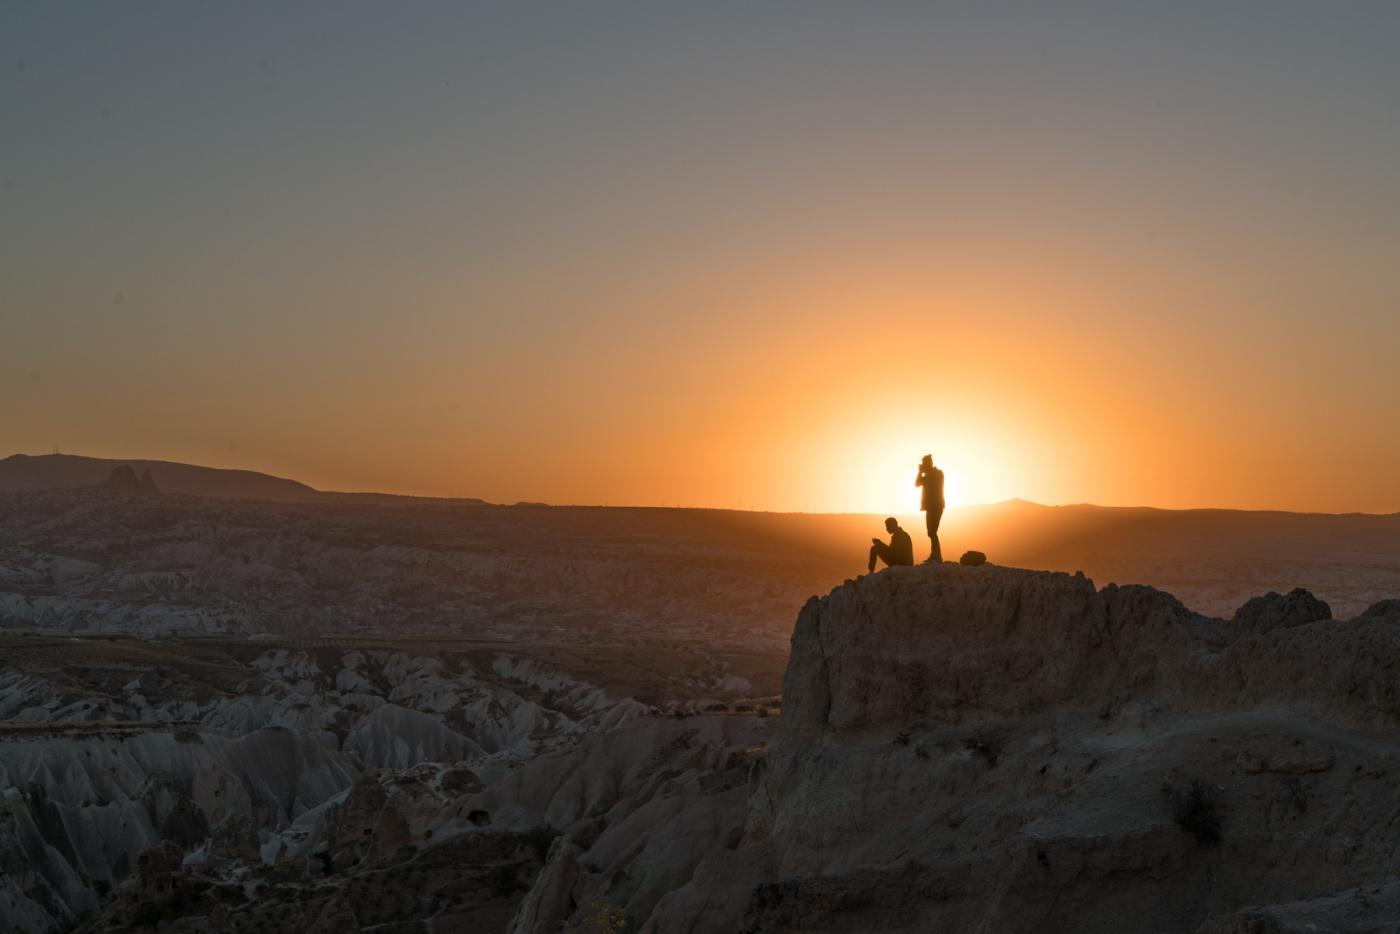 Sunset over Kizilcukur or Kizil çukur valley in Cappadocia, Turkey